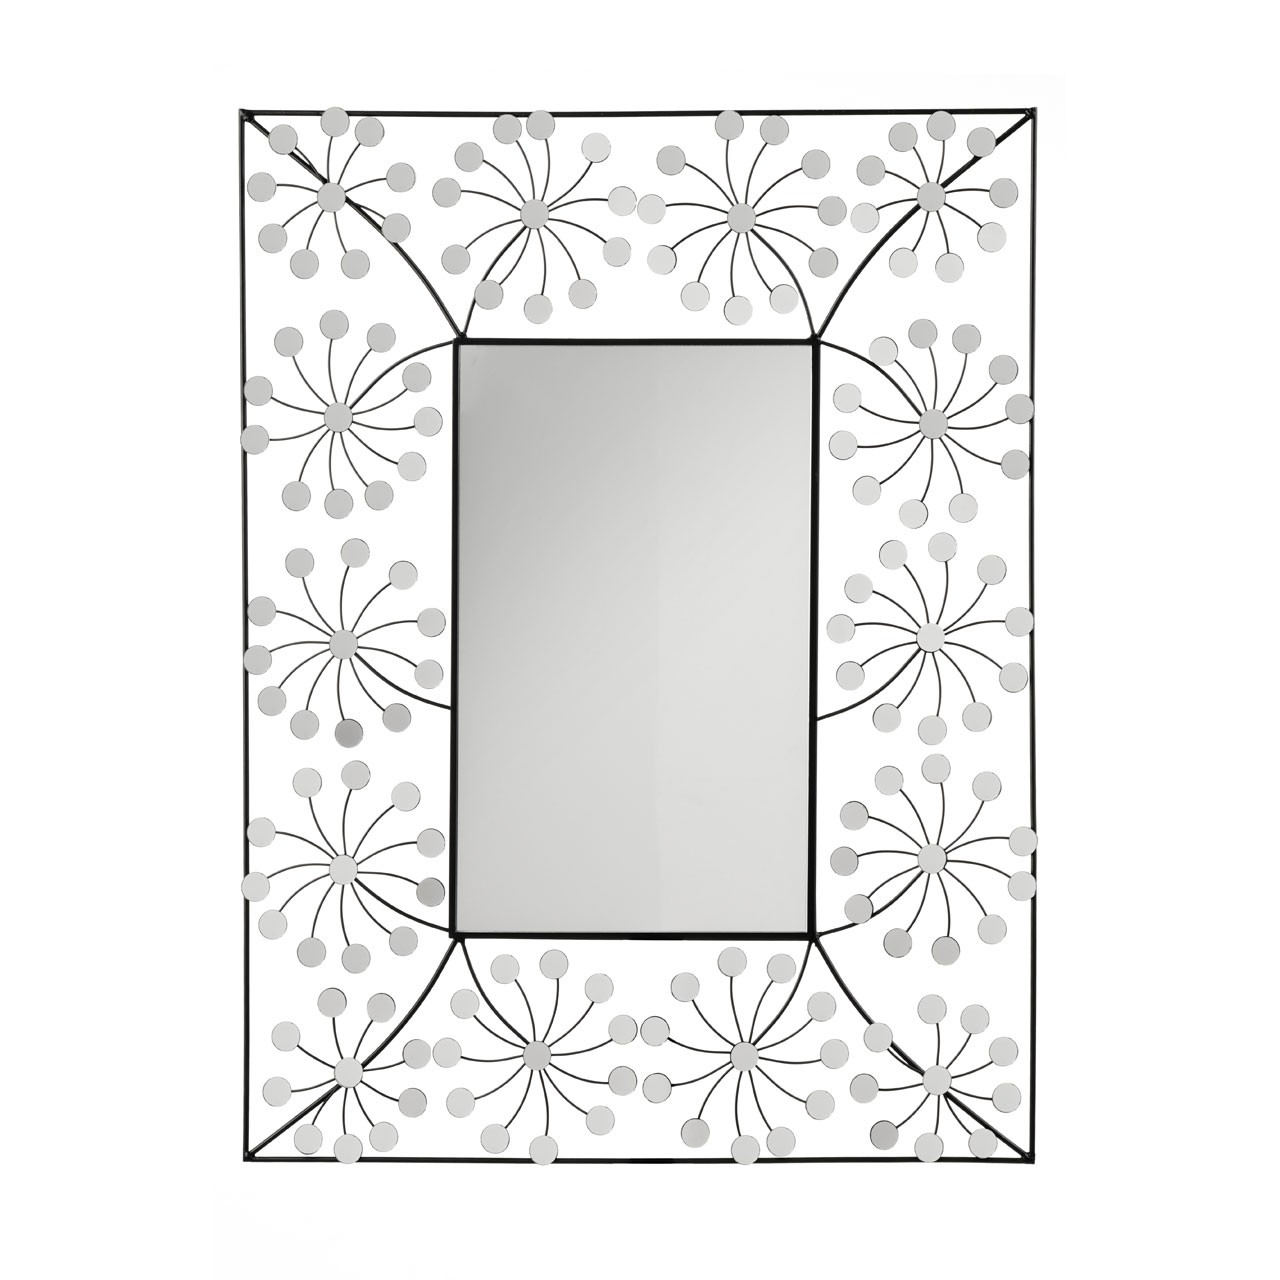 Floret Wall Mirror, Metal